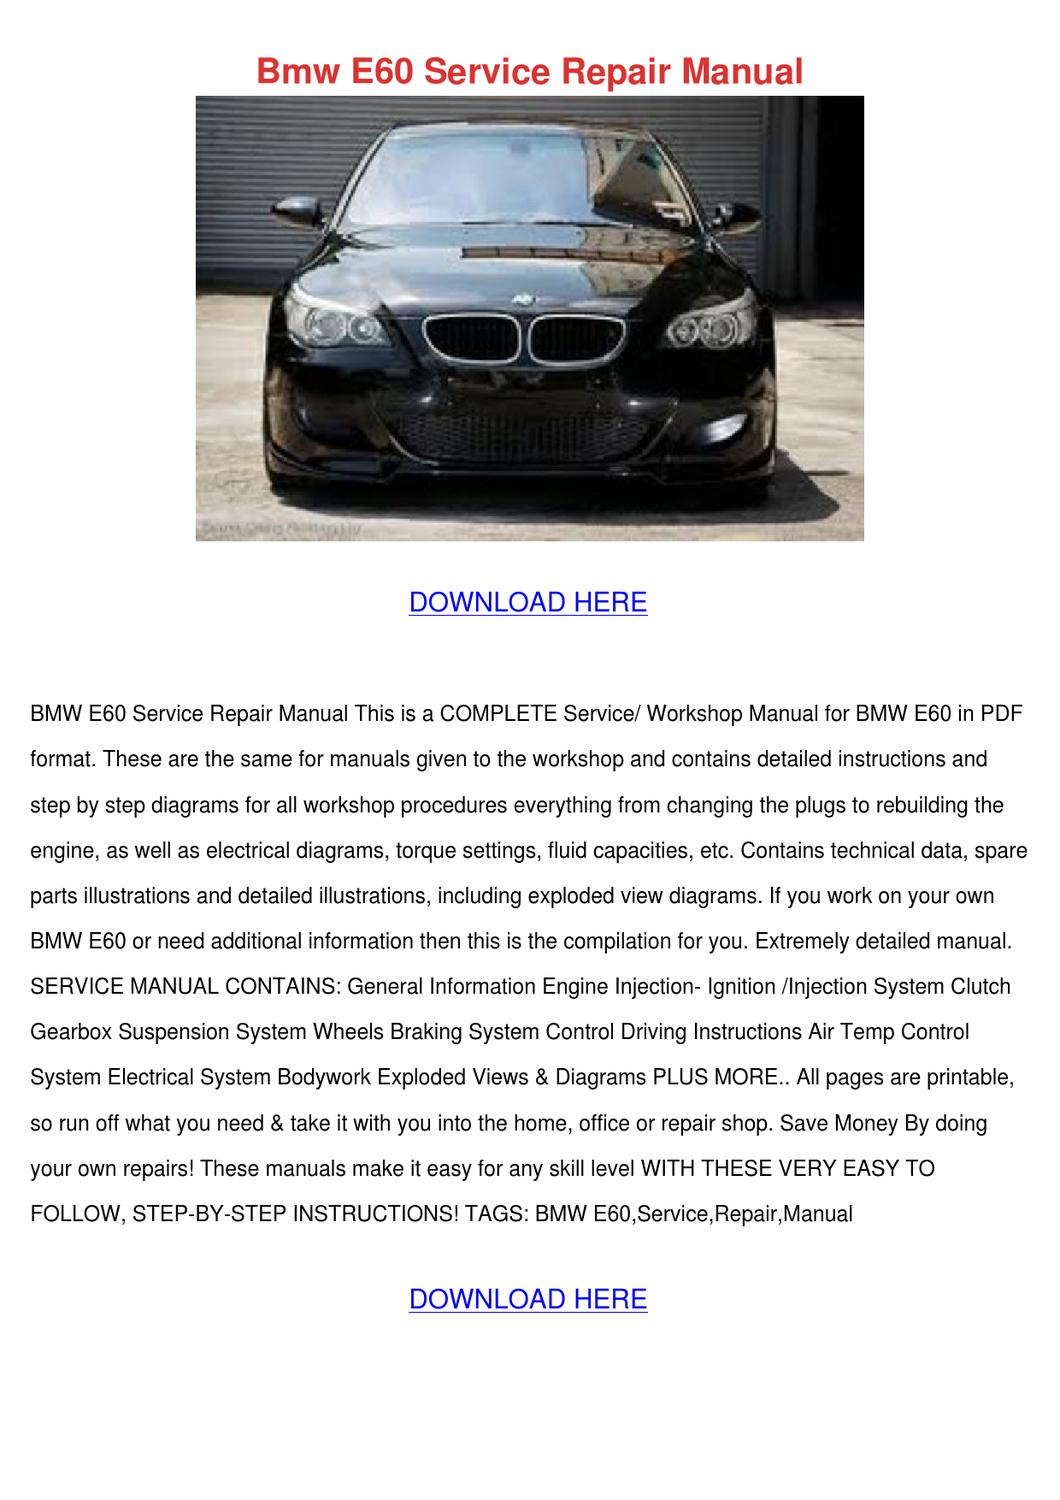 Bmw E60 Owners Manual Pdf Overtheroadtruckersdispatch